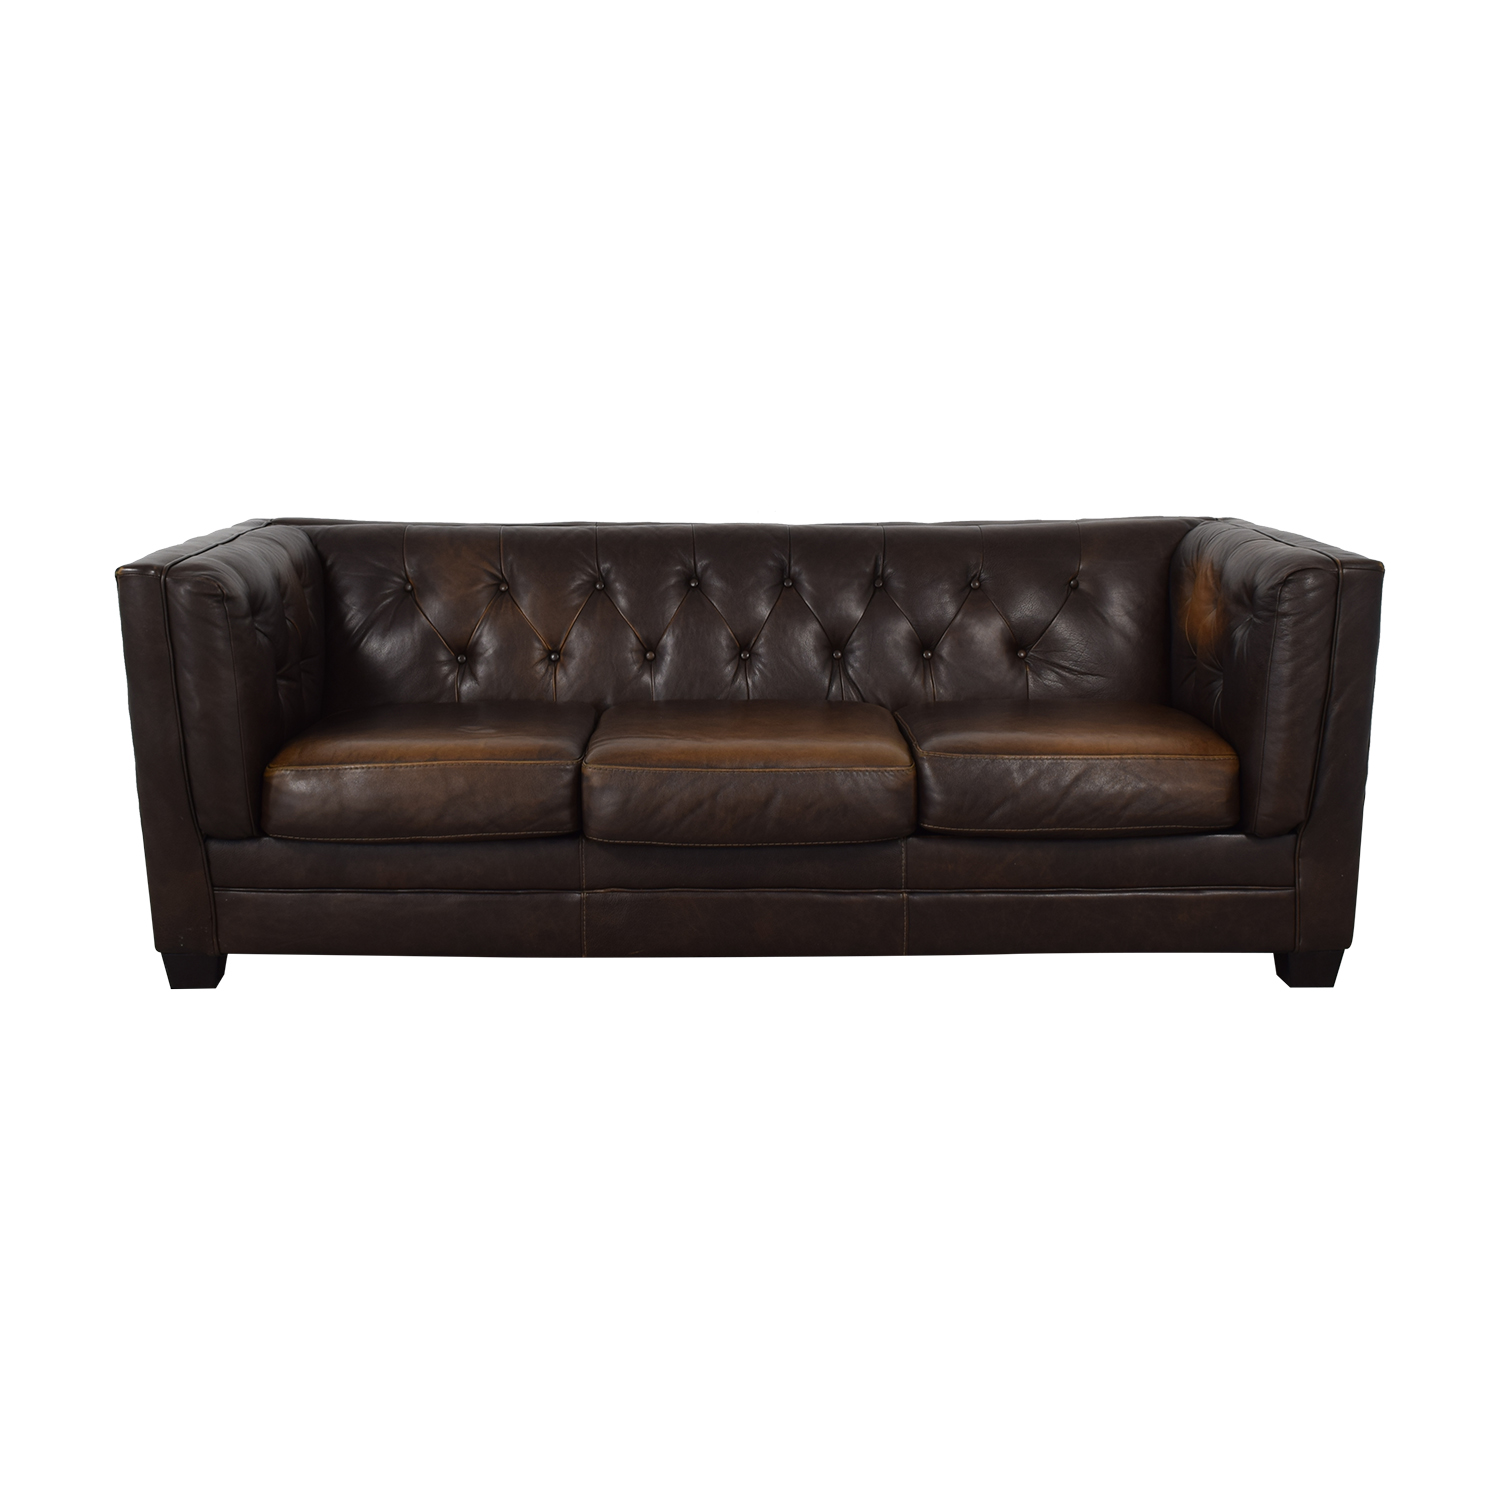 Ashley Furniture Brown Tufted Three Cushion Sofa Dimensions